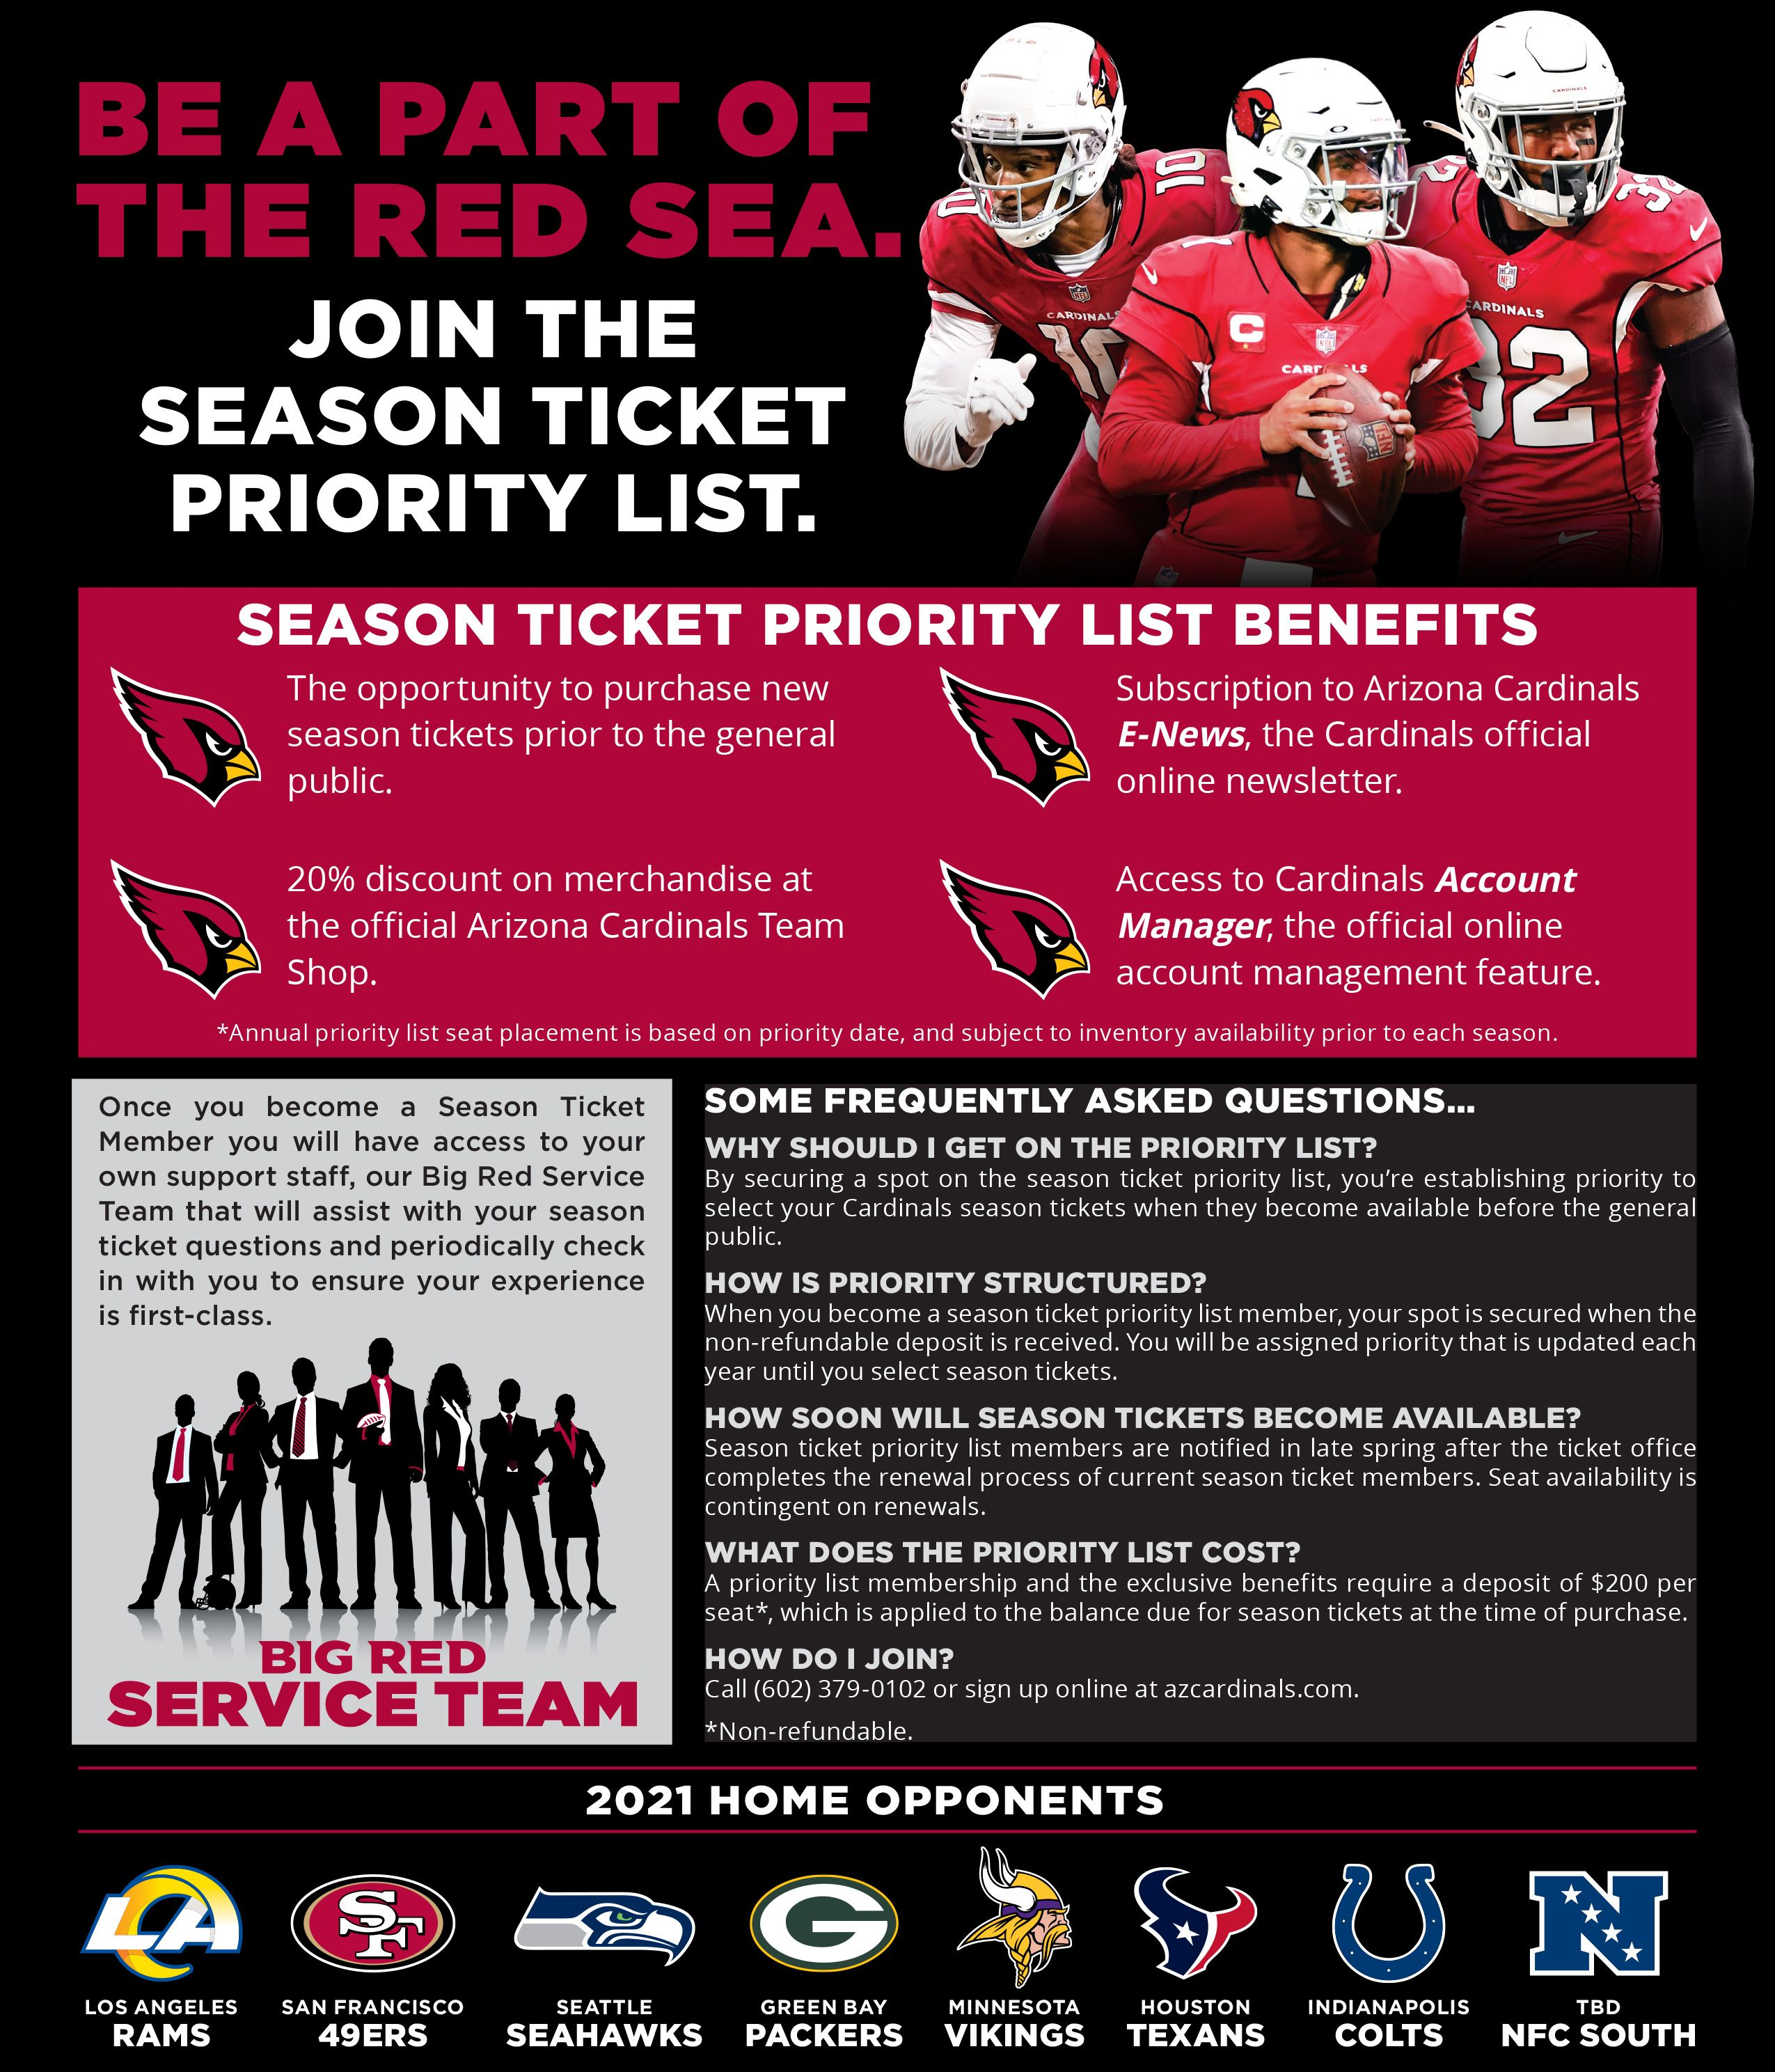 Arizona Cardinals Season Ticket Priority List Information 2020